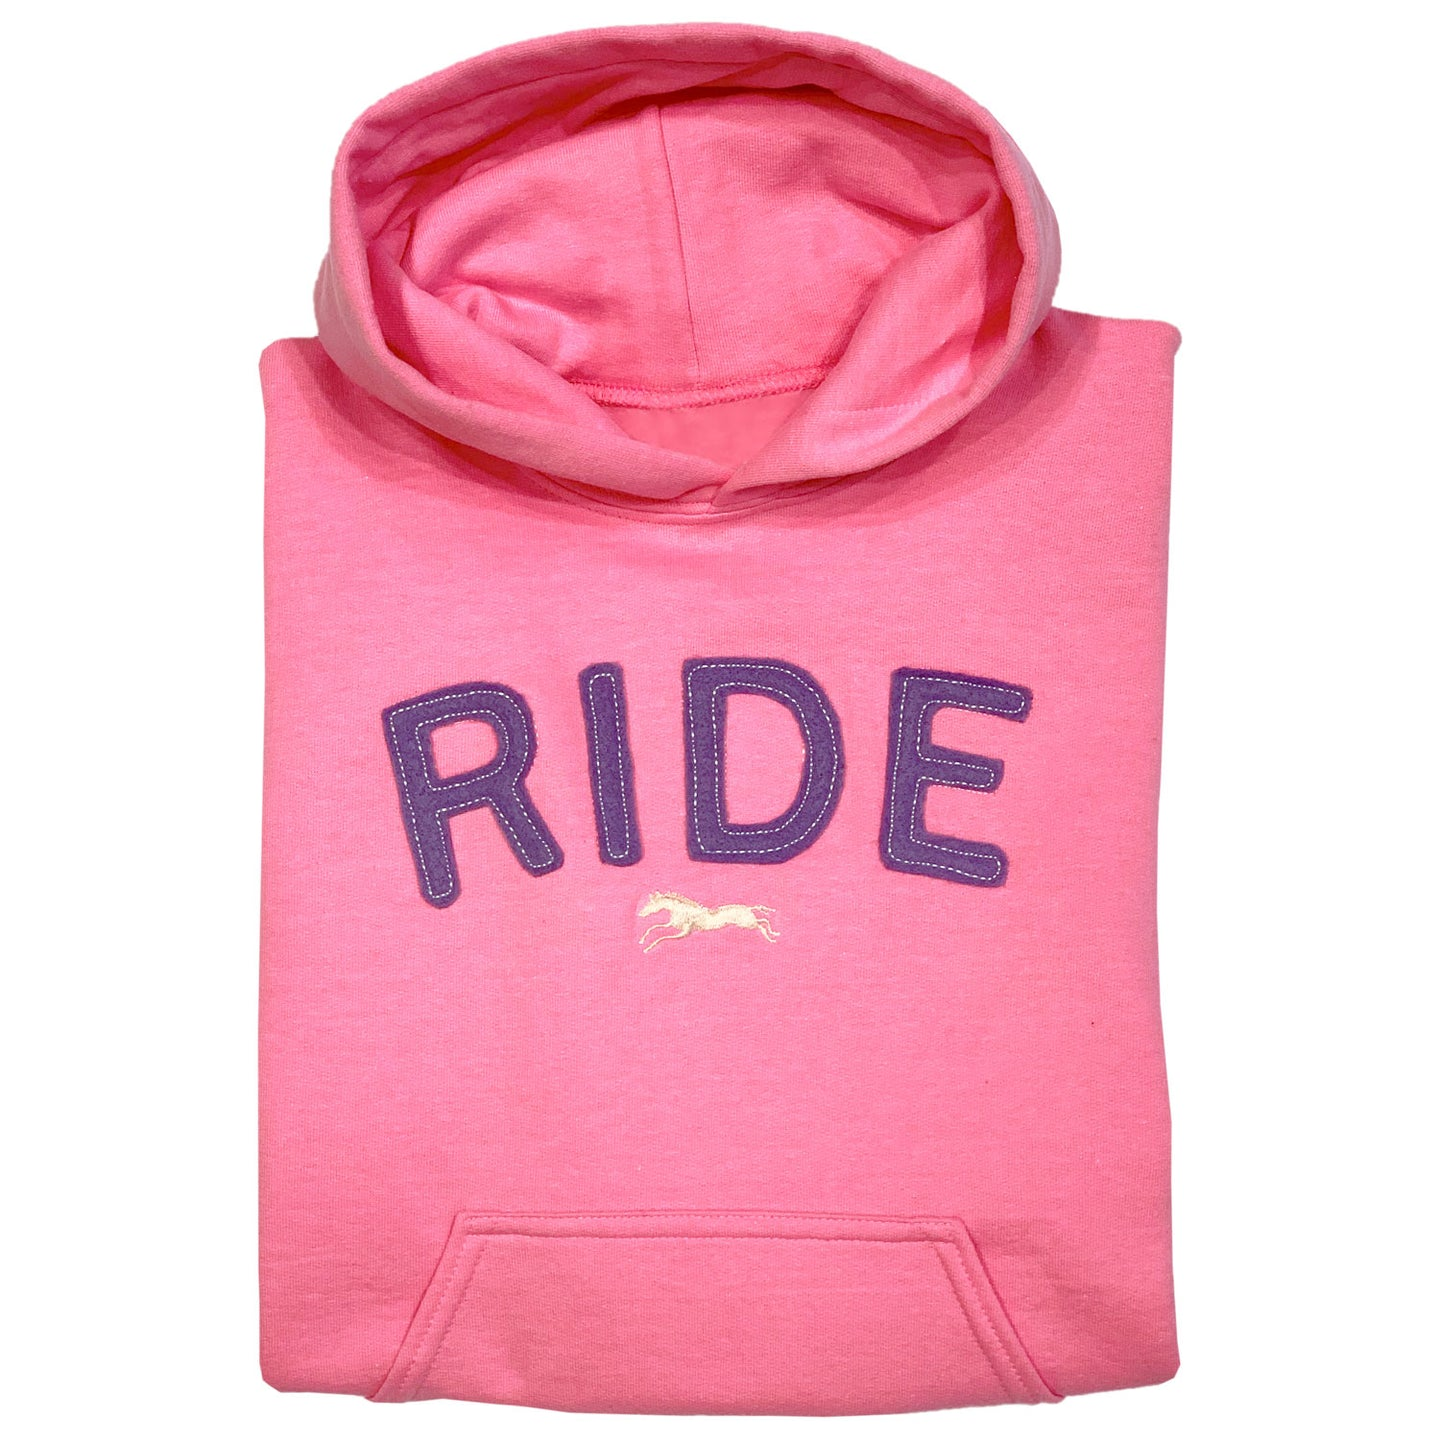 RIDE Embroidered Appliqué Youth Hoodie 19583